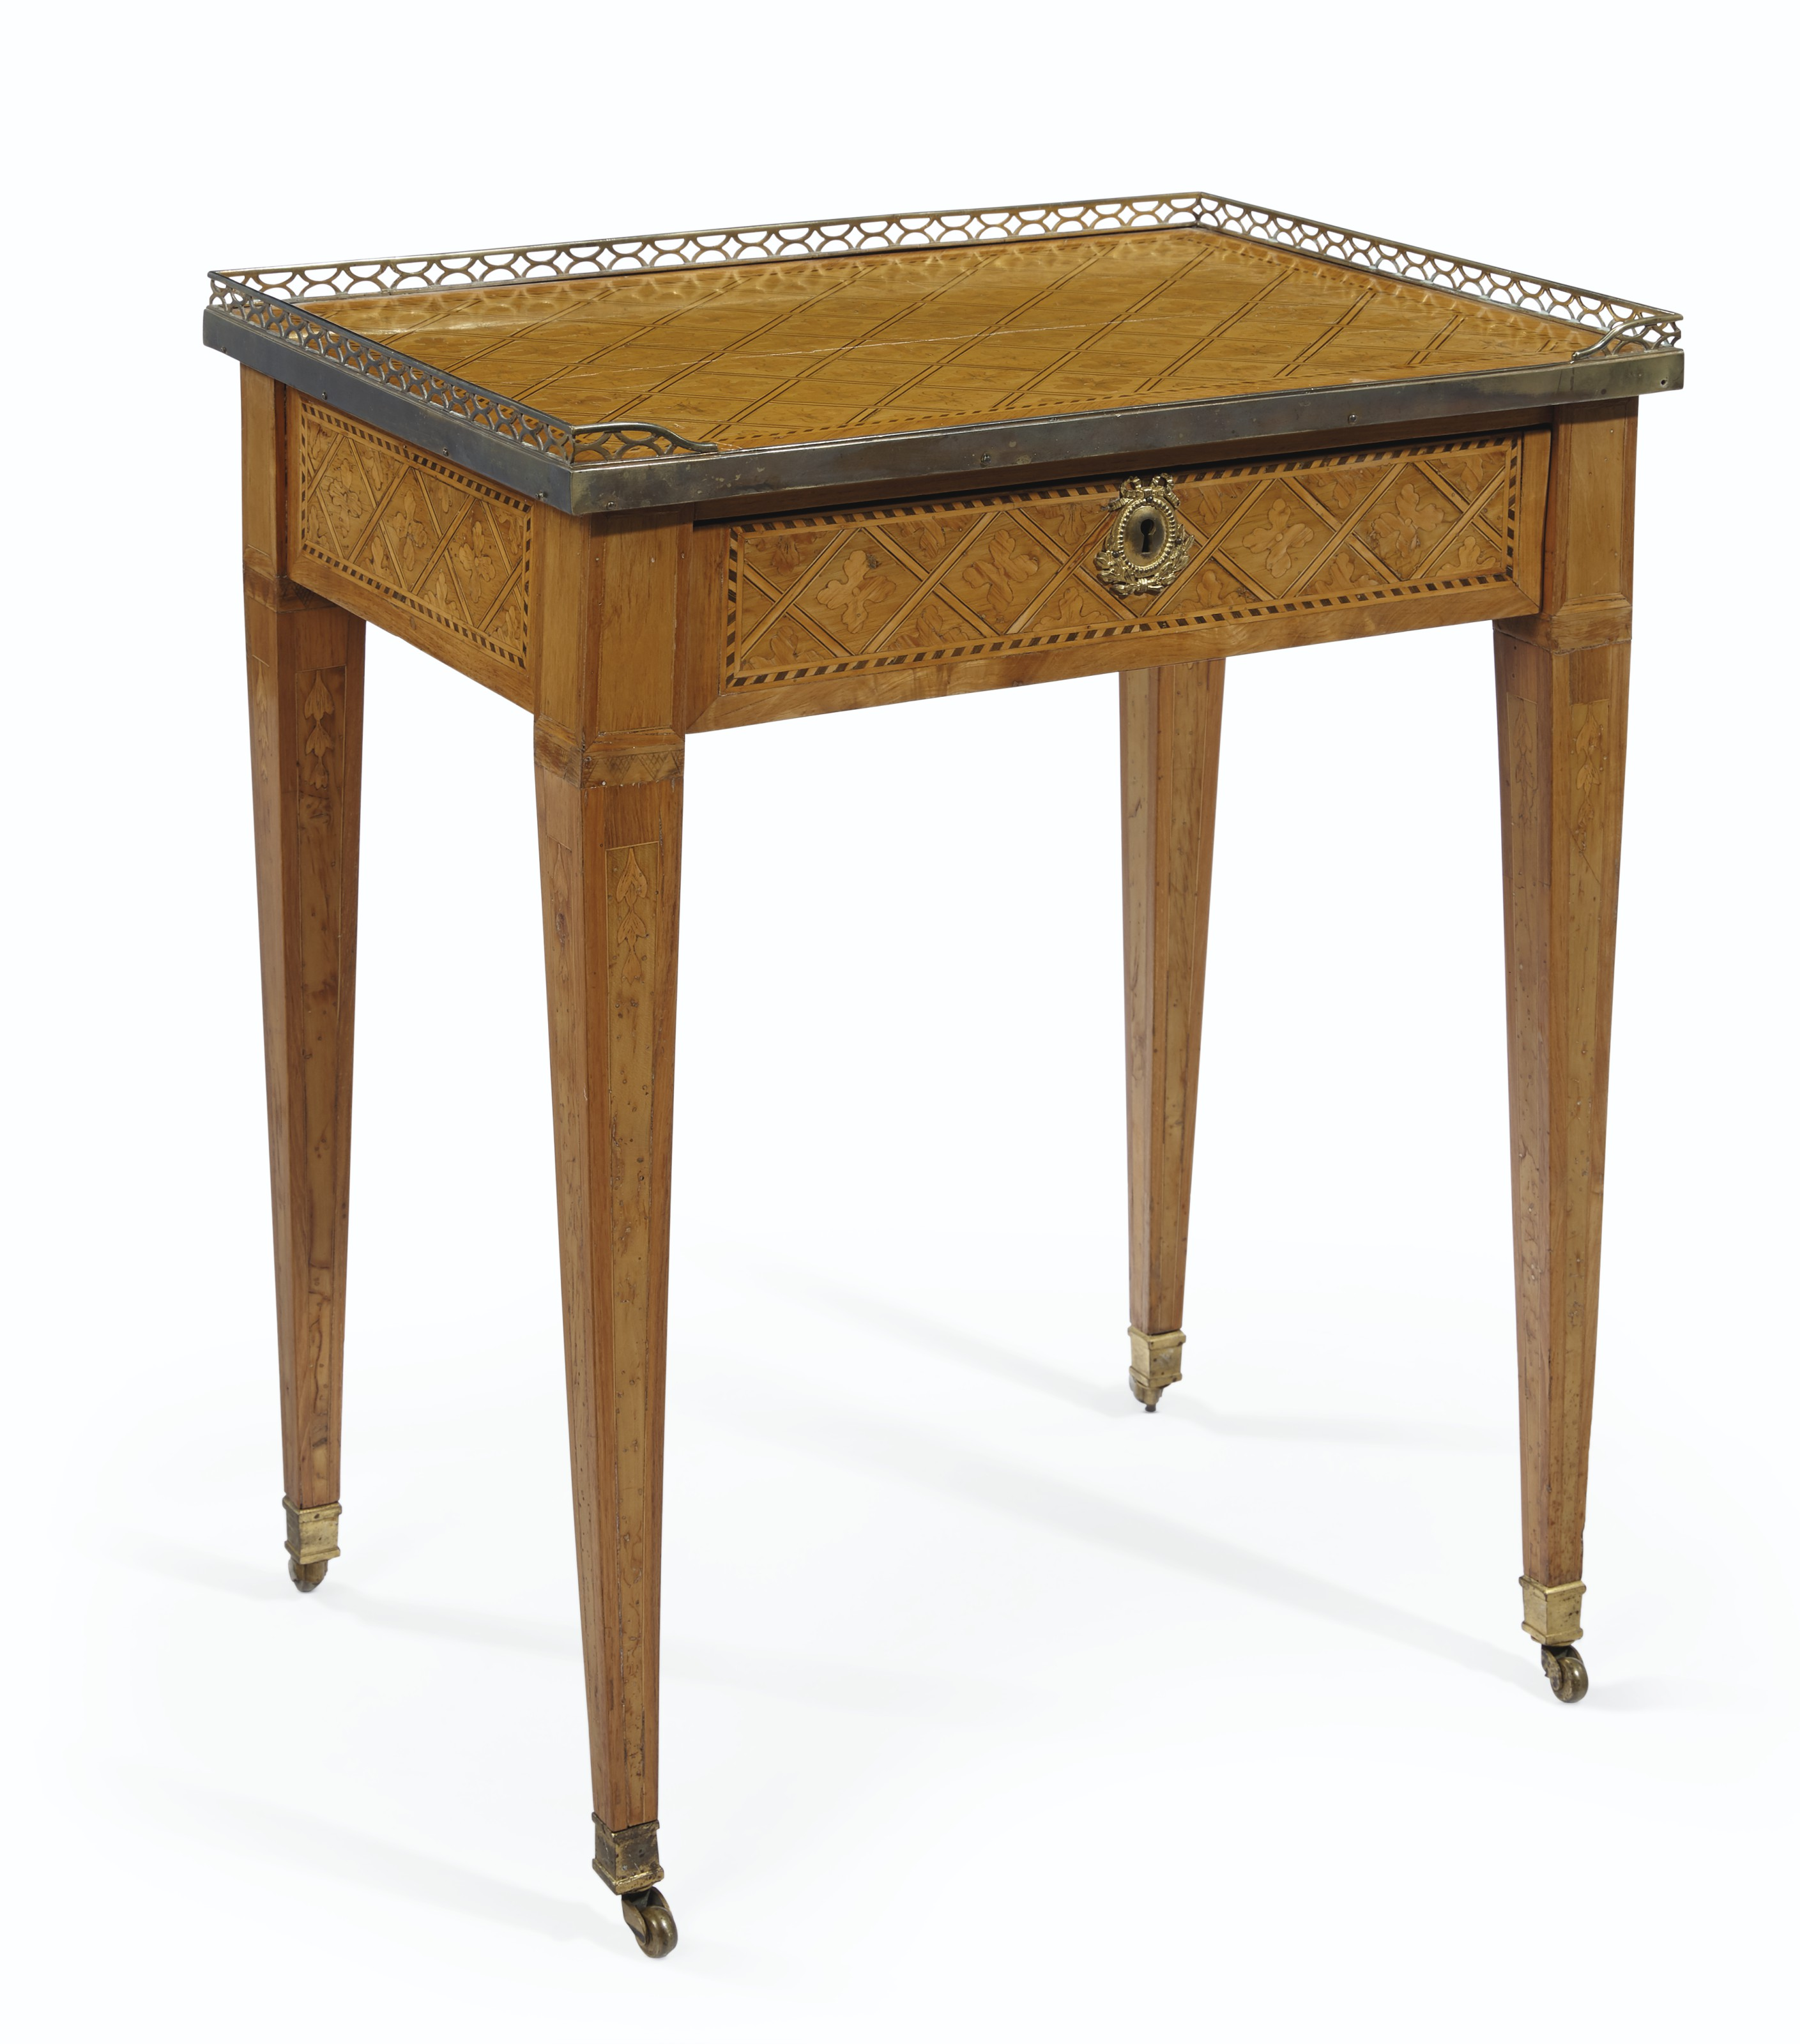 A FRENCH ORMOLU-MOUNTED TULIPWOOD, FRUITWOOD AND PARQUETRY OCCASIONAL TABLE